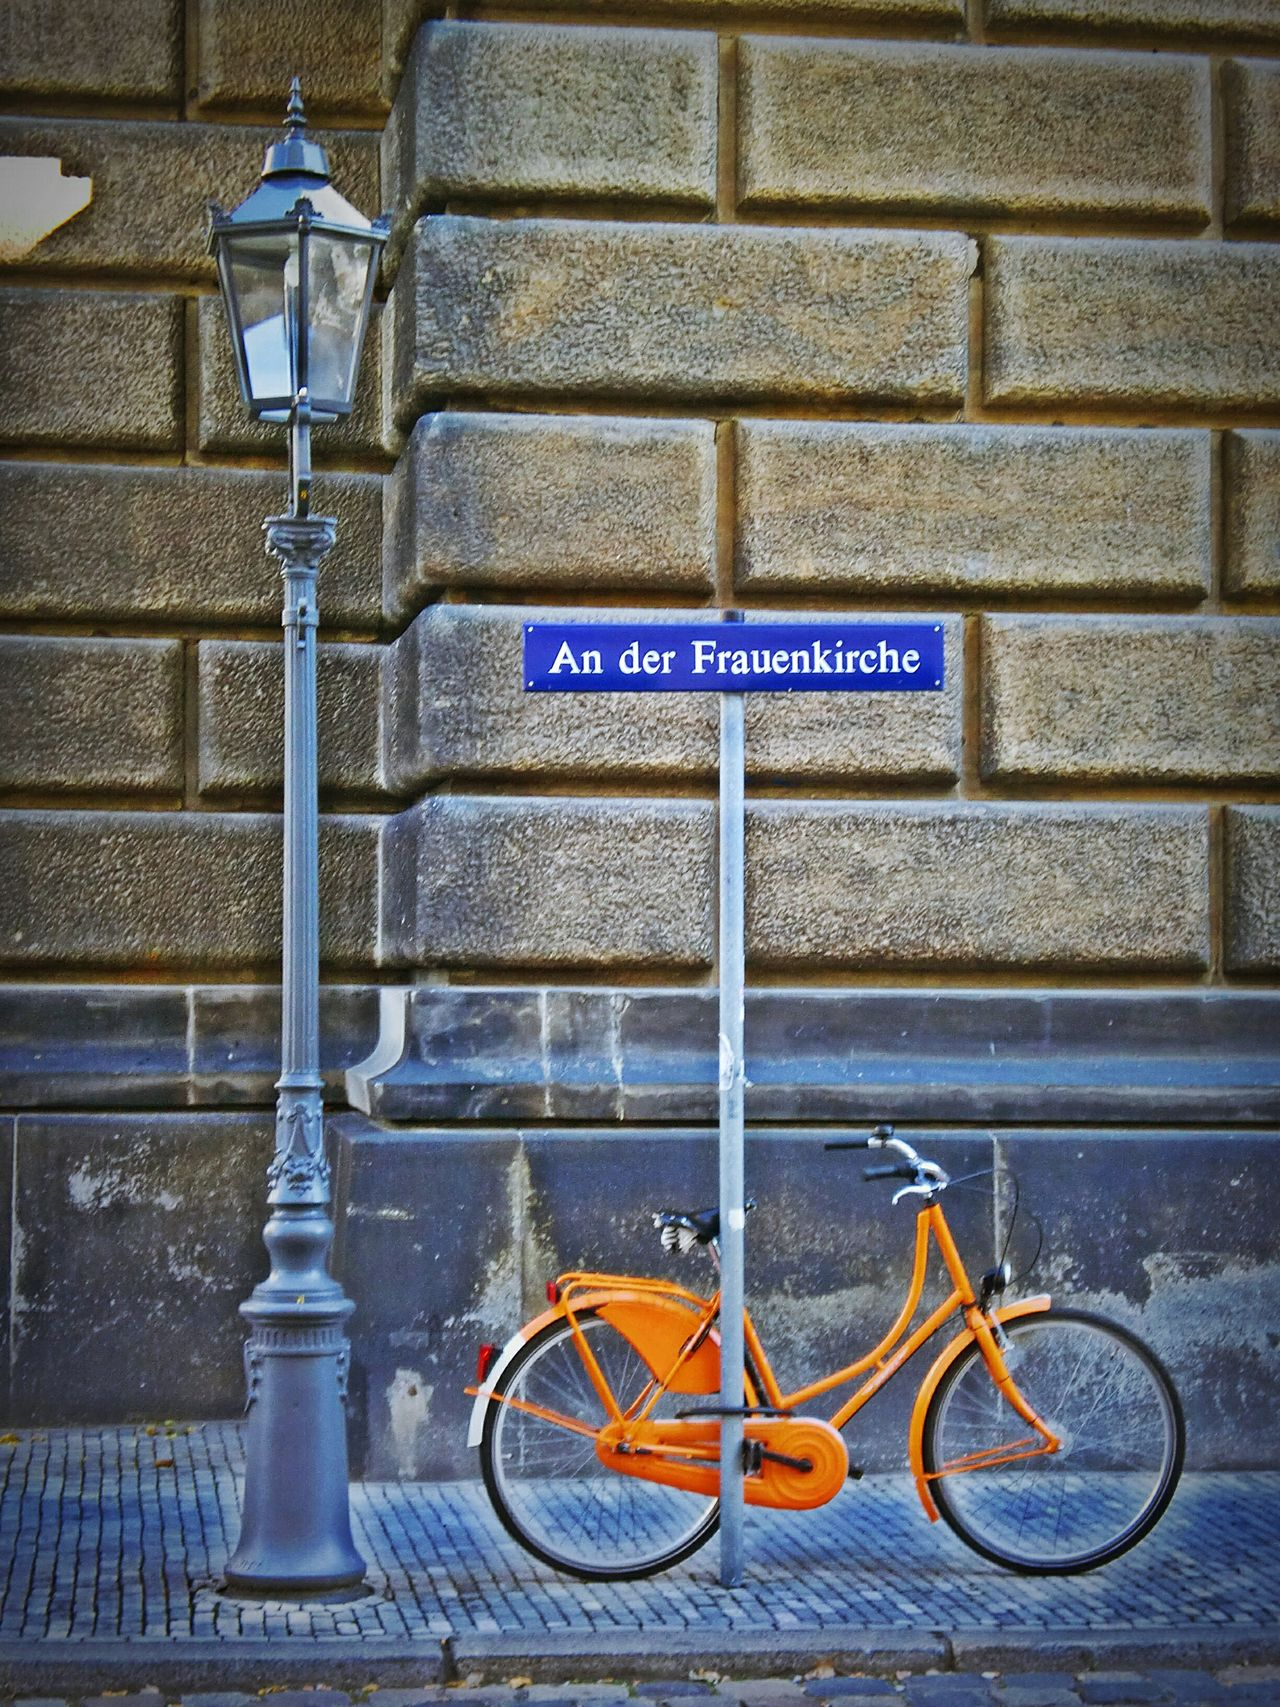 Text Transportation Guidance Communication No People Outdoors Day No Parking Sign Road Sign Architecture Close-up Eyeem Photography Eyeemphotography EyeEm Gallery Eye4photography  First Eyem Photo Eye4photography  Dresden Frauenkirche Bike Life Biketrip Dresden Oldtown Adults Only Postcard Street Relaxing